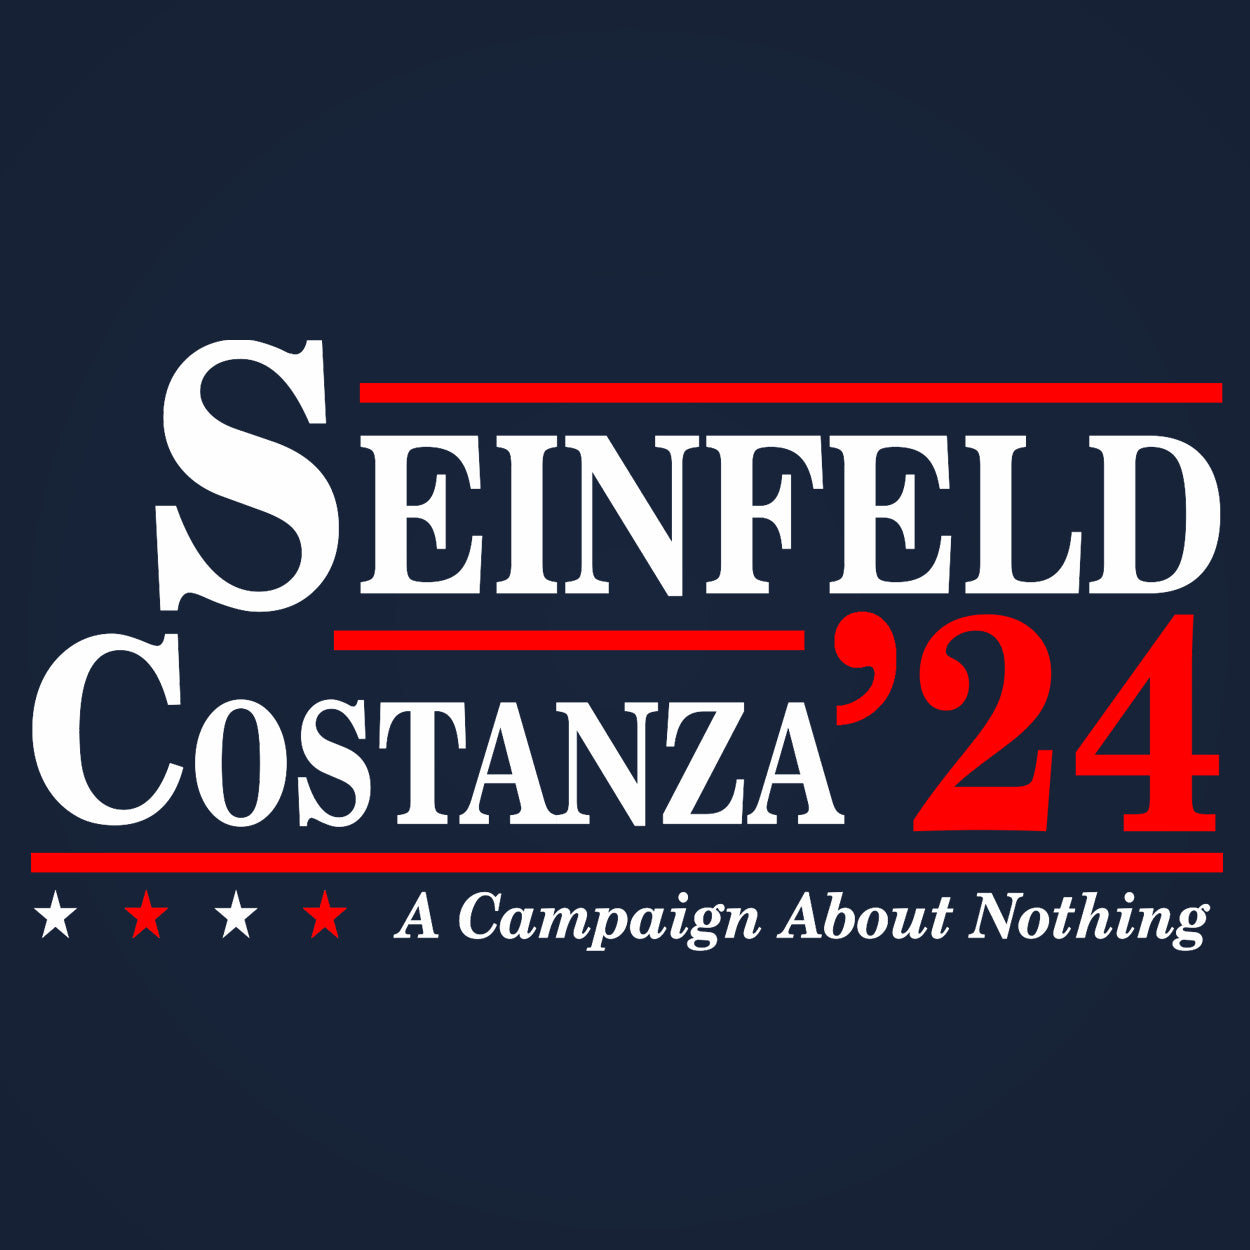 Seinfeld Costanza 2024 Election